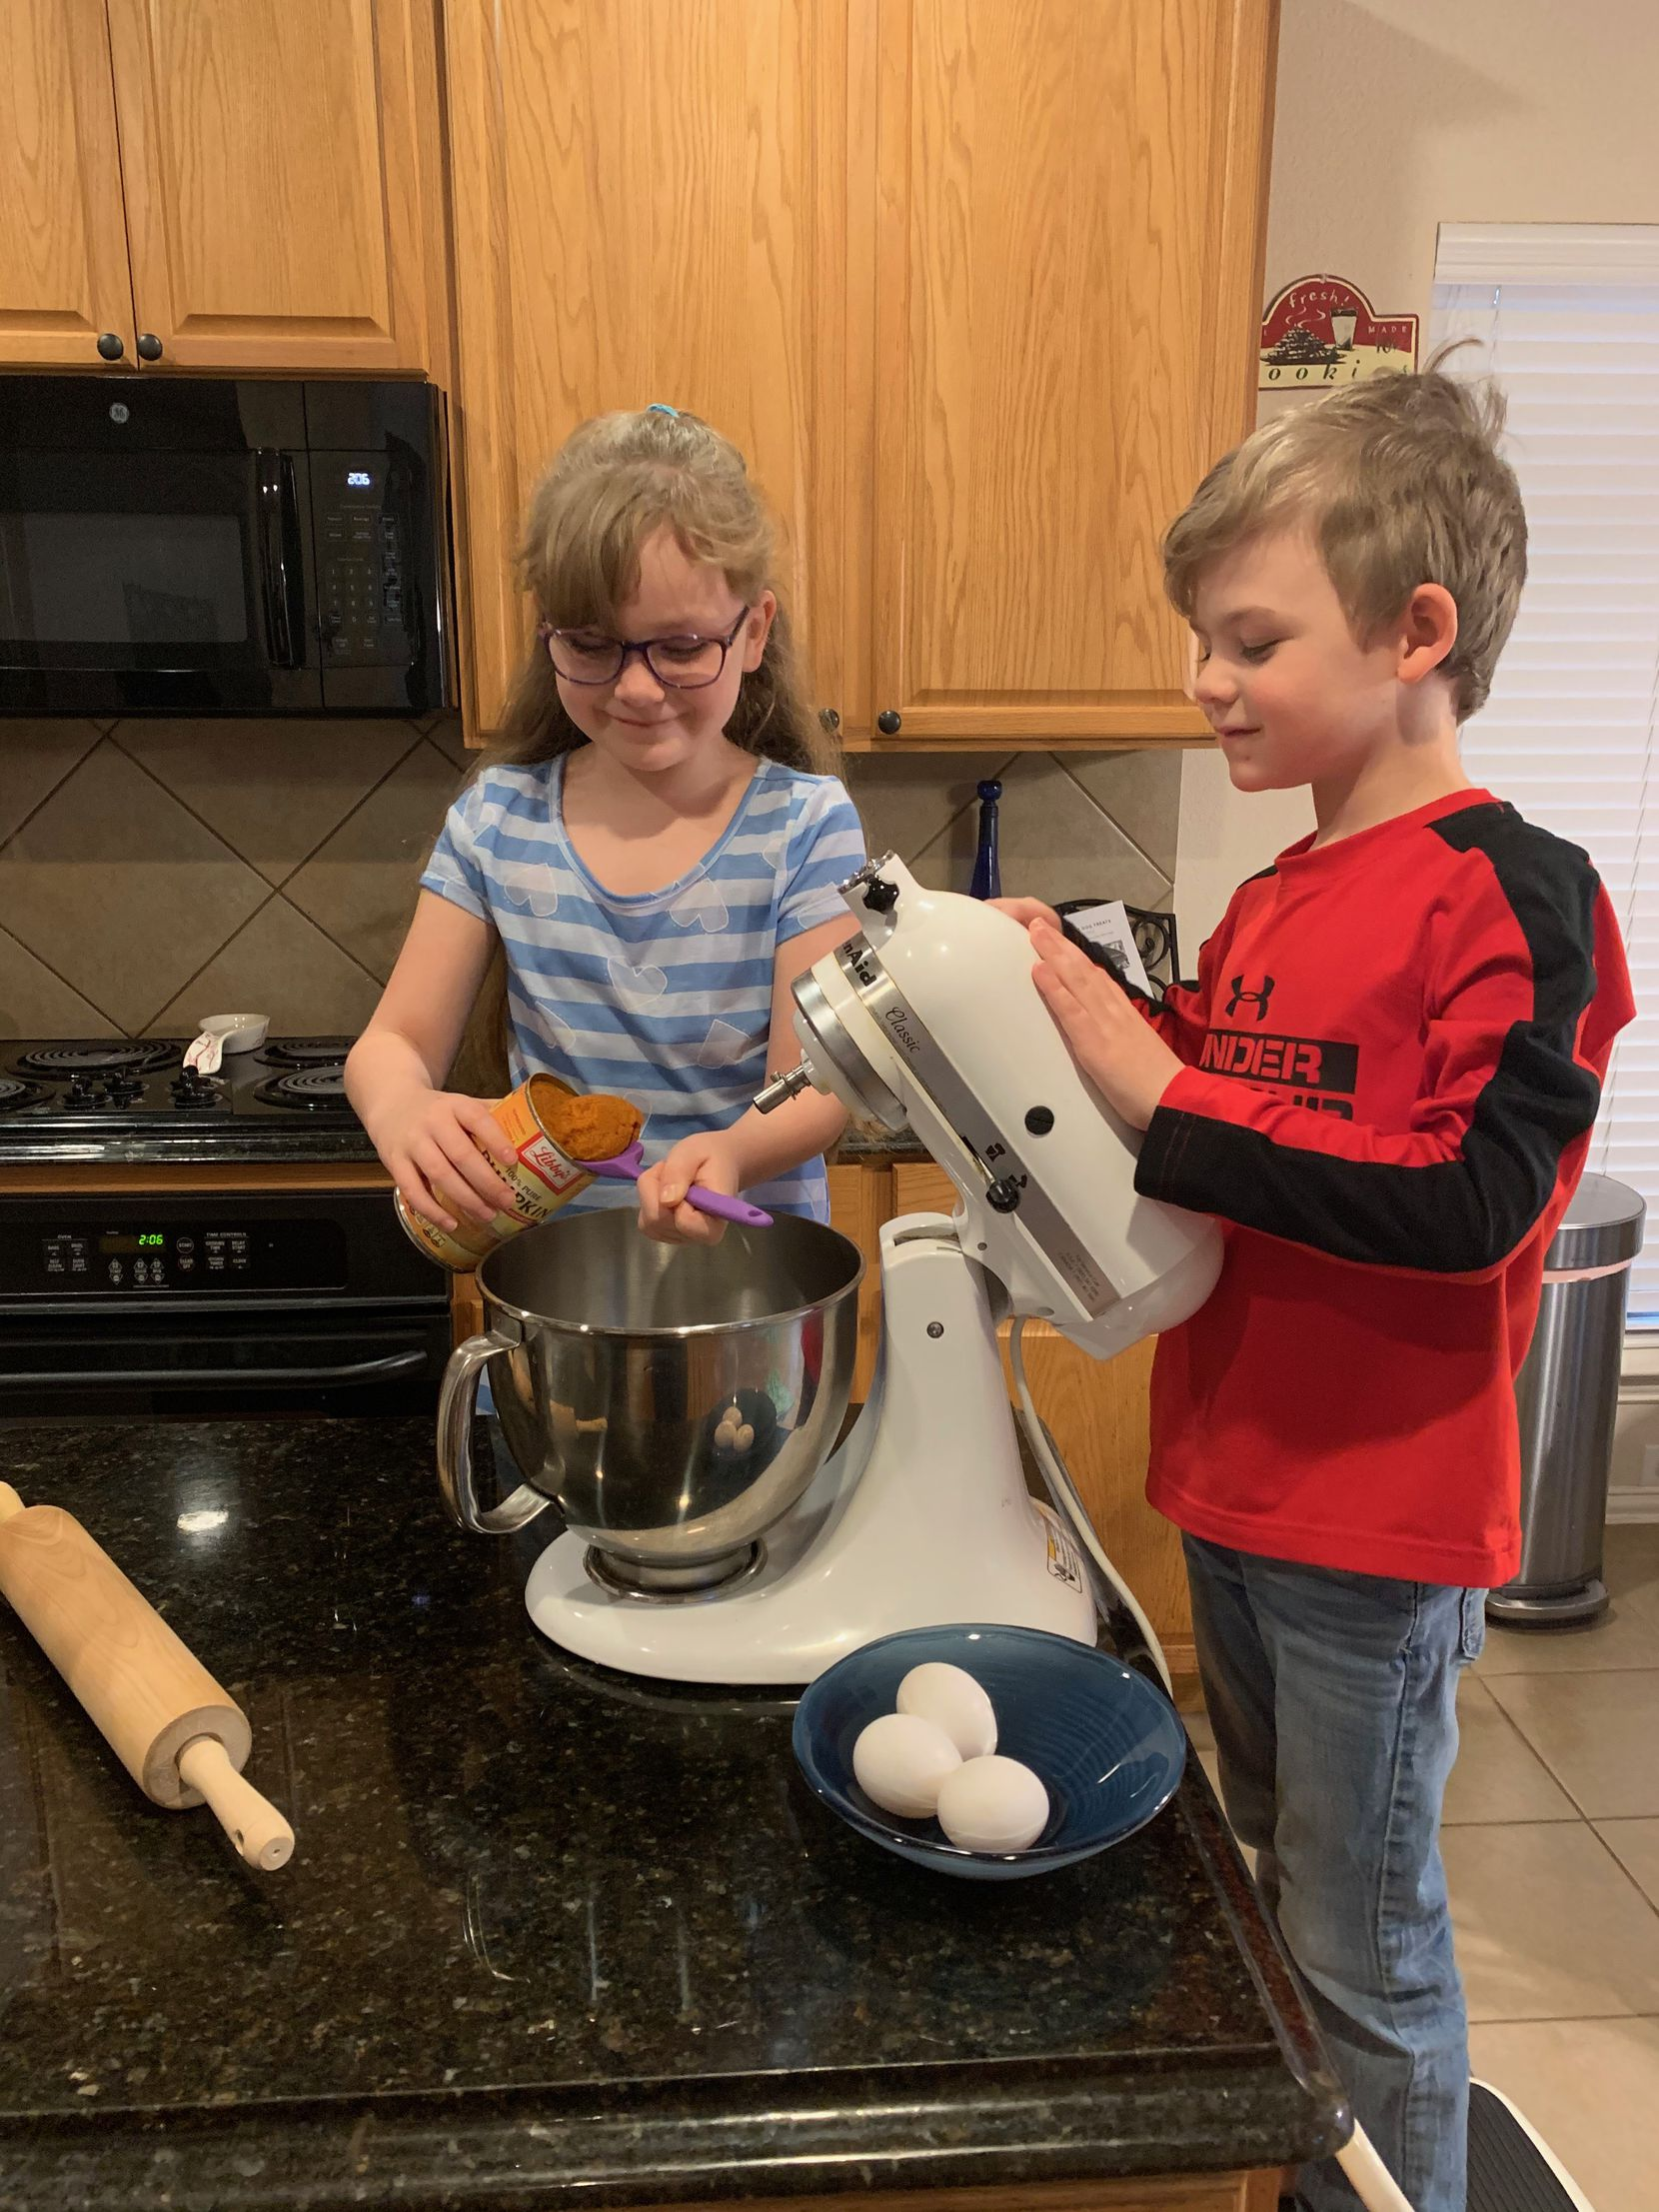 Lily Romito, 8, and Luca Romito, 6, prepare homemade dog biscuits to sell at Maggie's Barkery. The siblings plan to donate all profits to Operation Kindness of North Dallas.